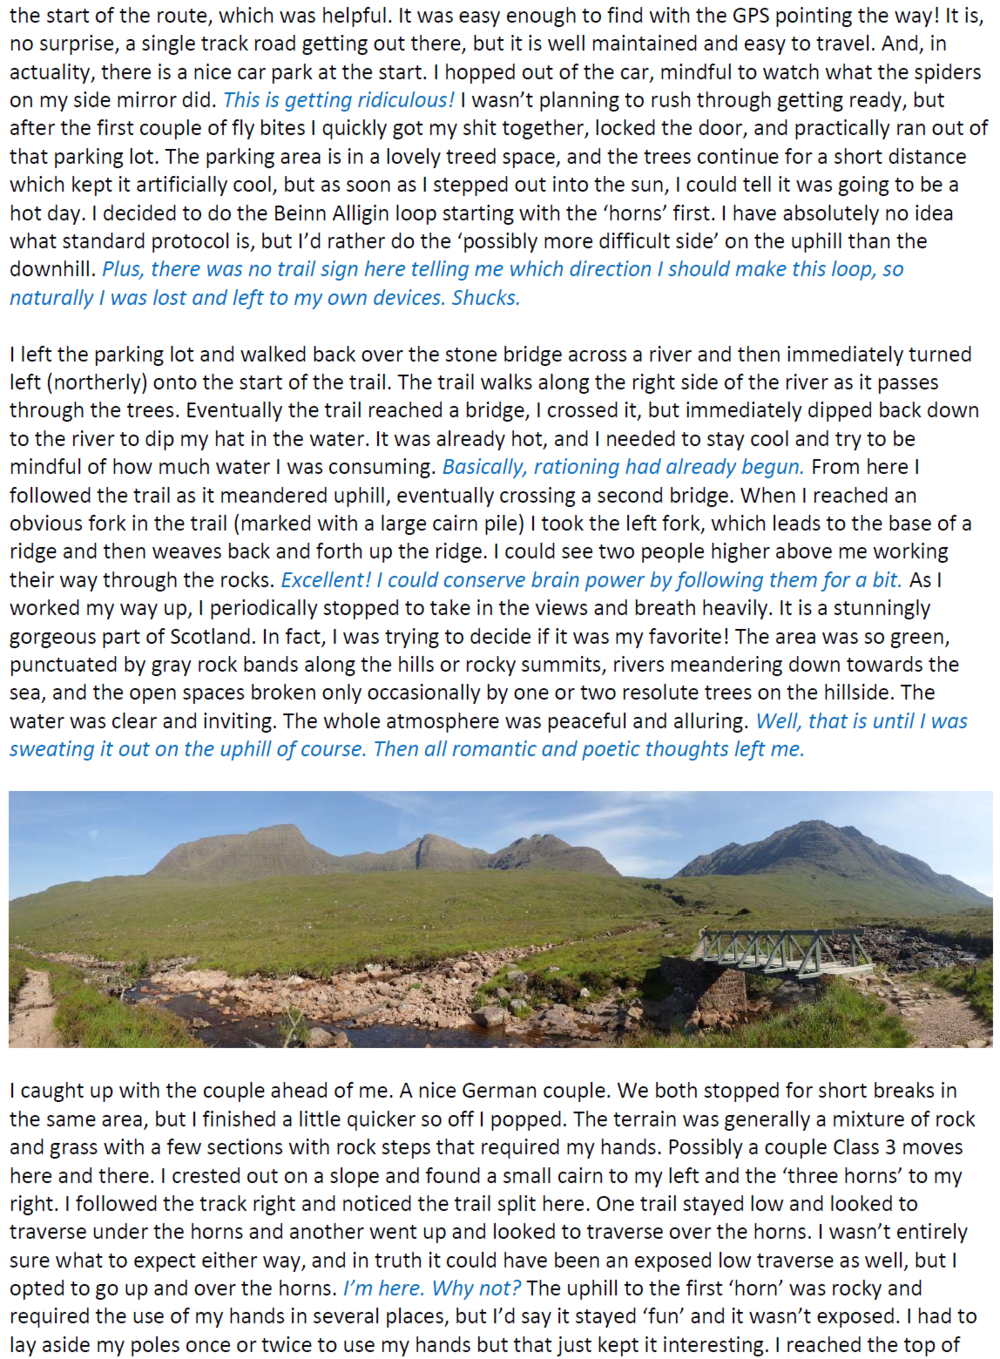 Beinn Alligin (2).PNG